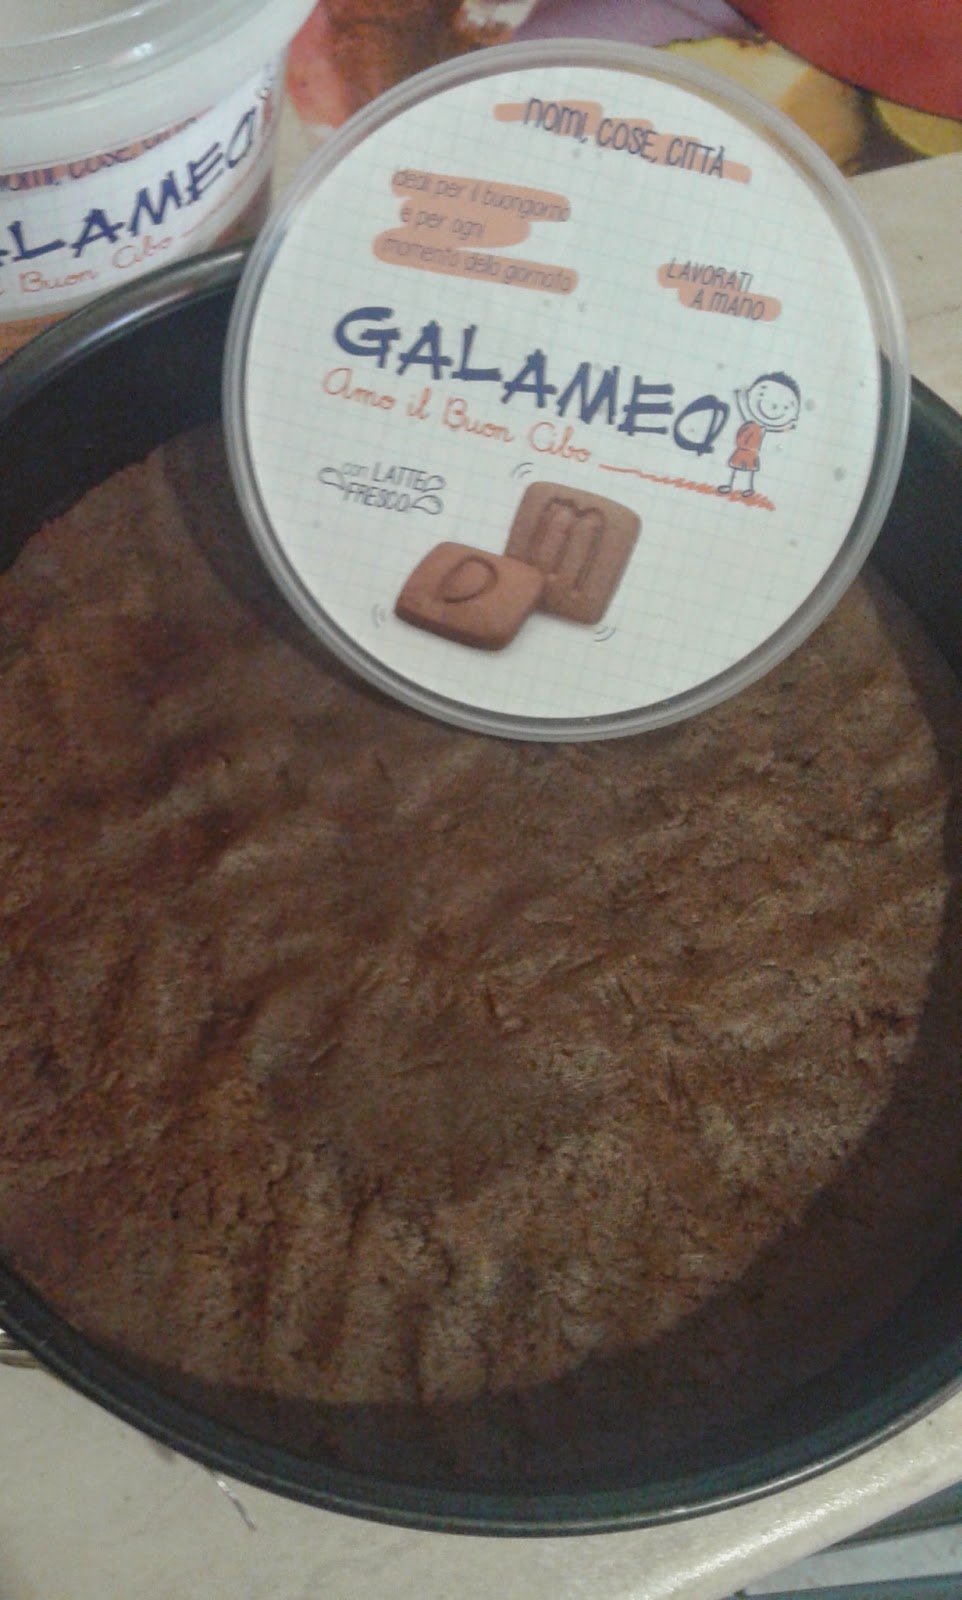 http://www.galameo.it/index.html